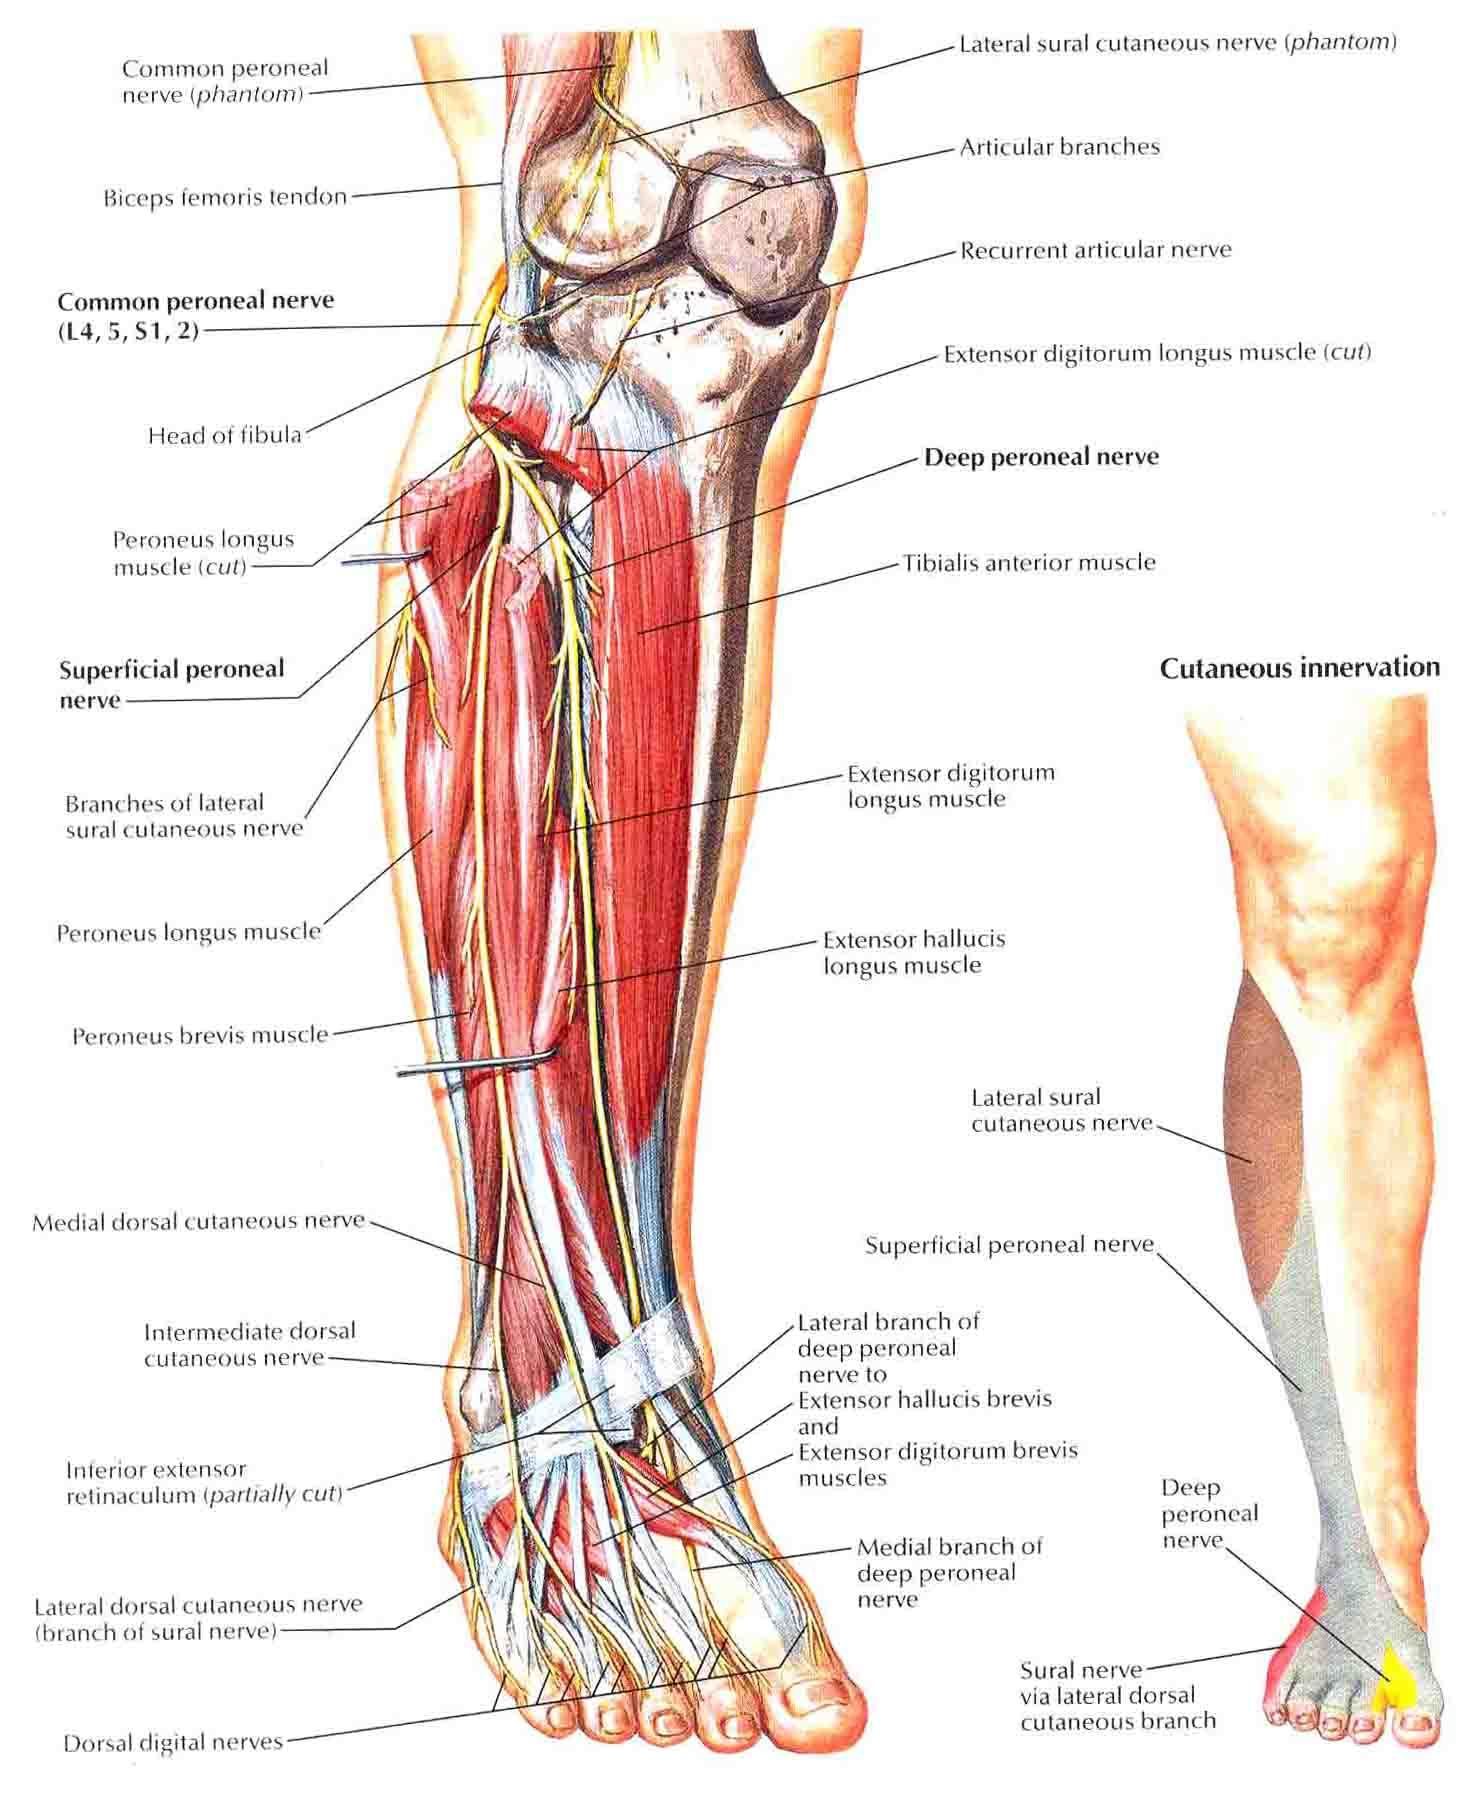 Common Peroneal Nerve | Nerve anatomy, Chronic pain and Crps